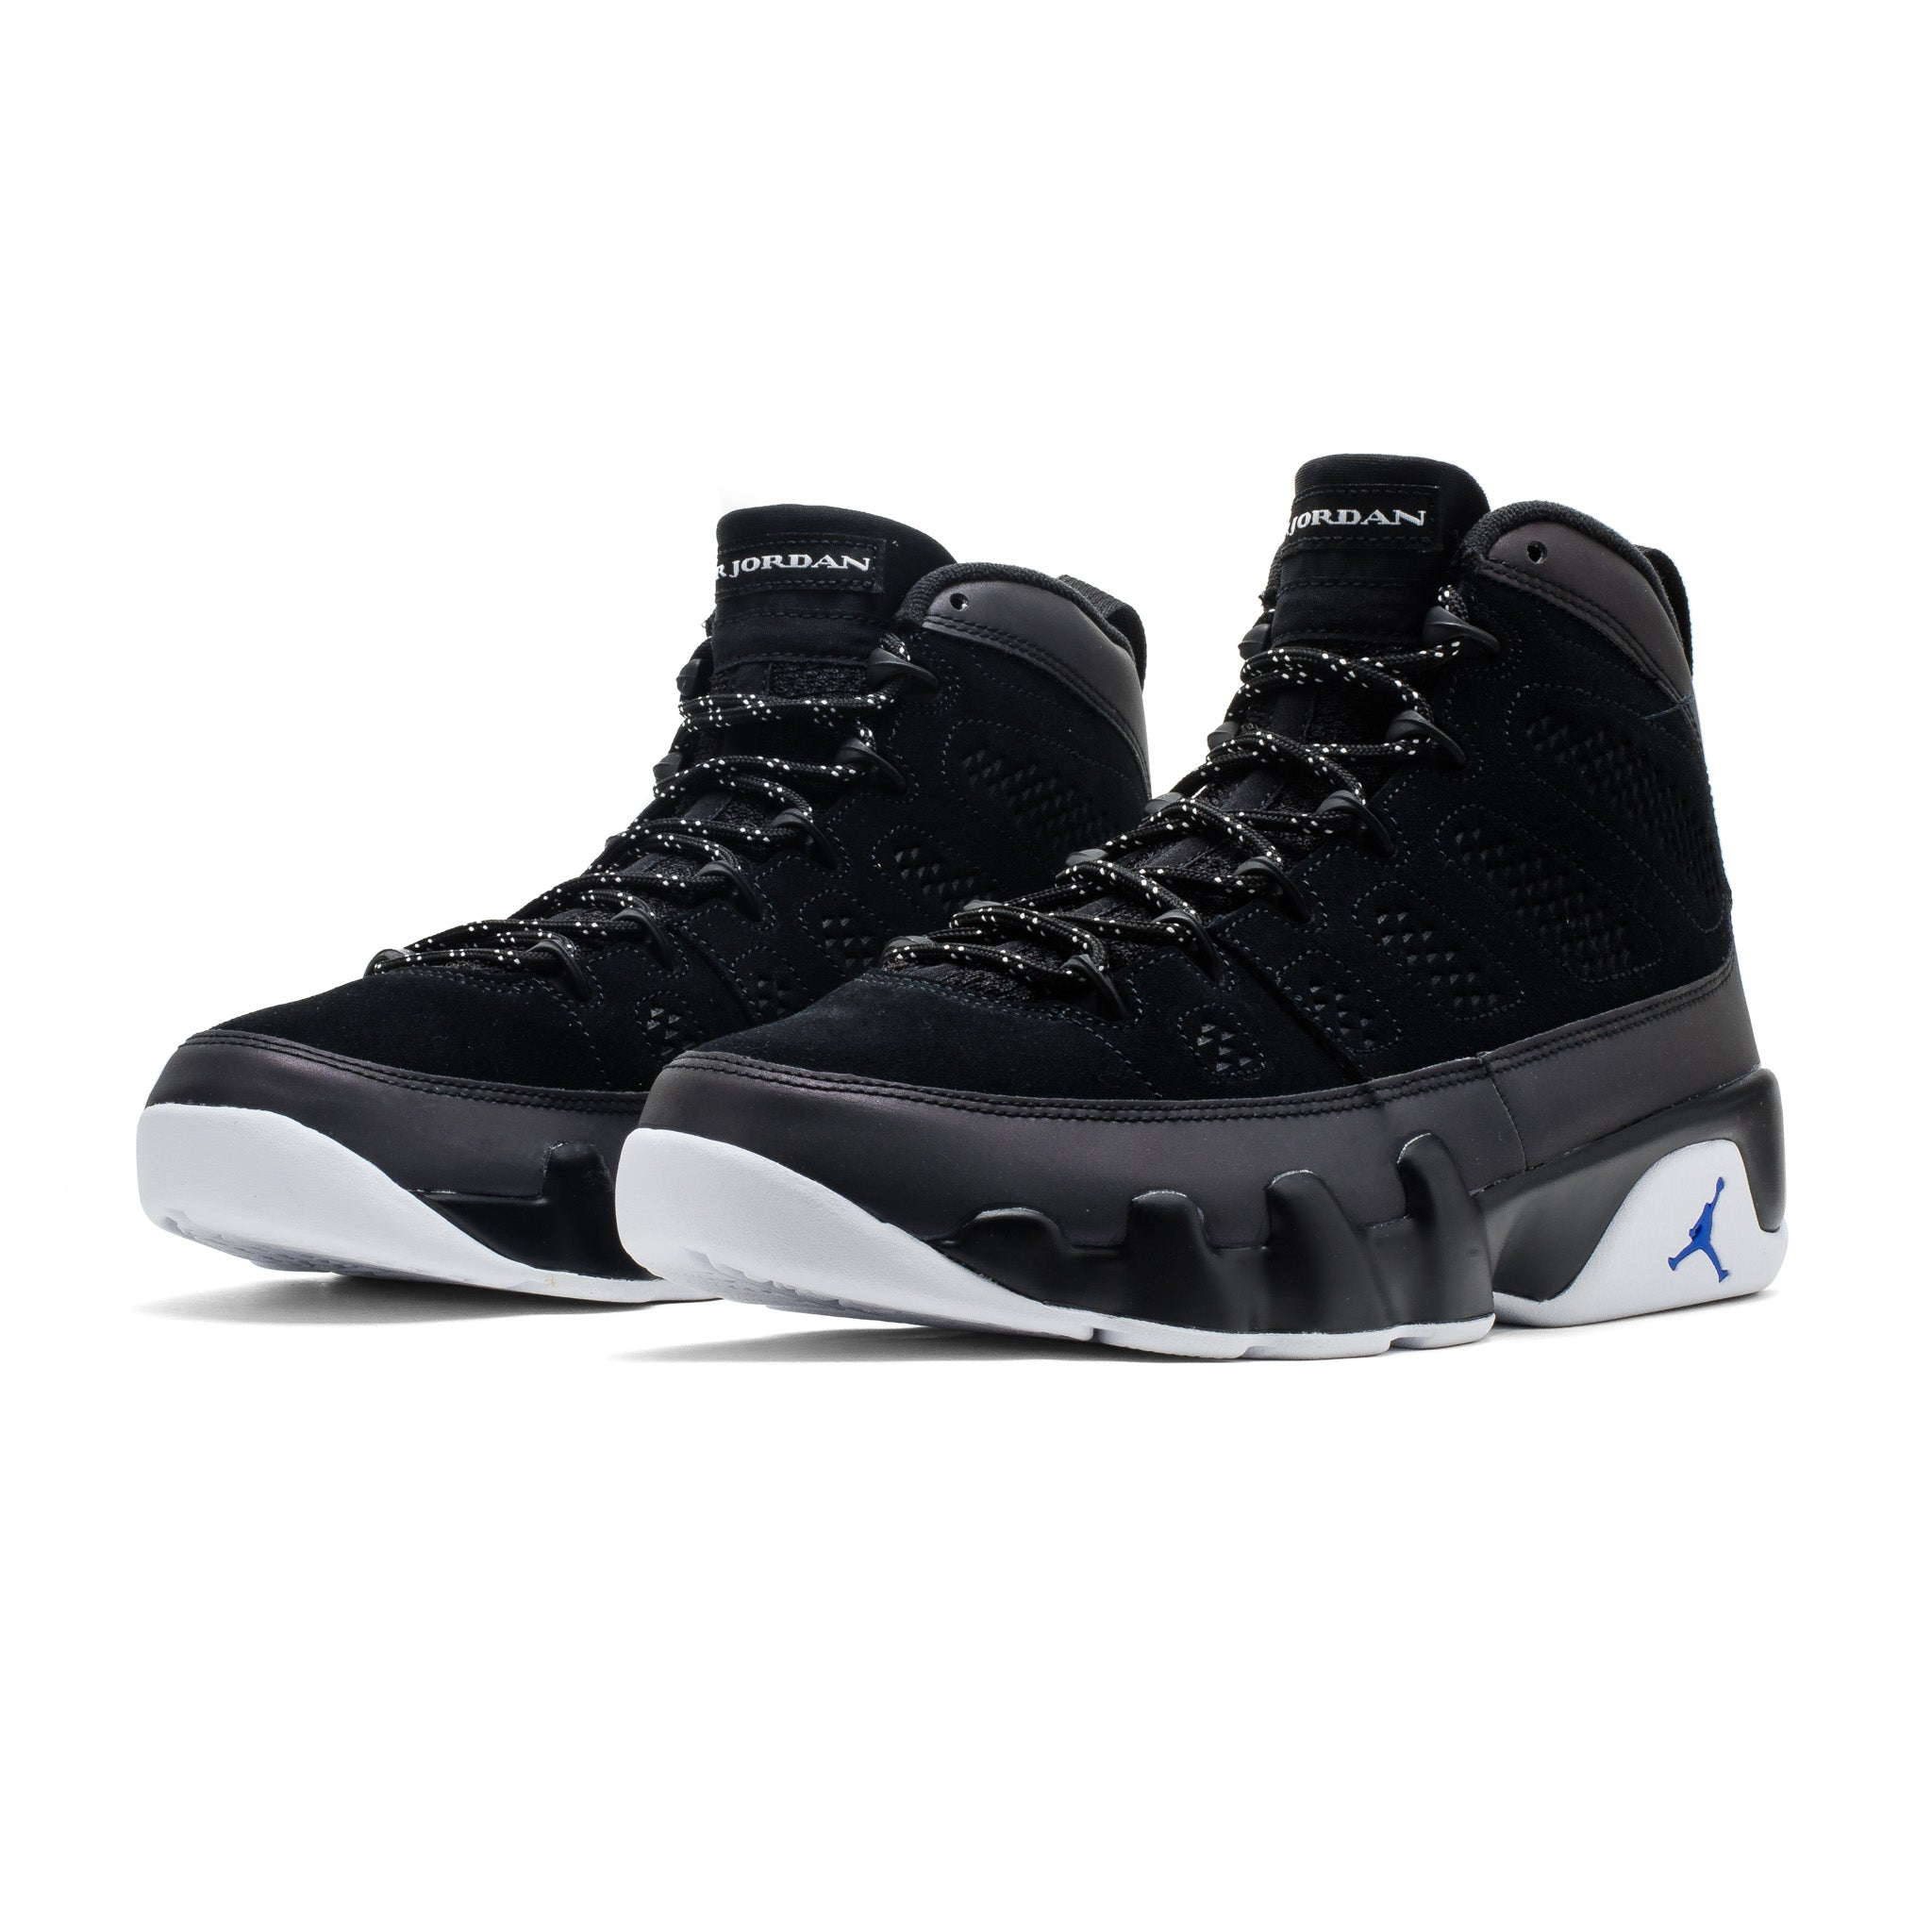 Air Jordan 9 Retro CT8019-024 Black